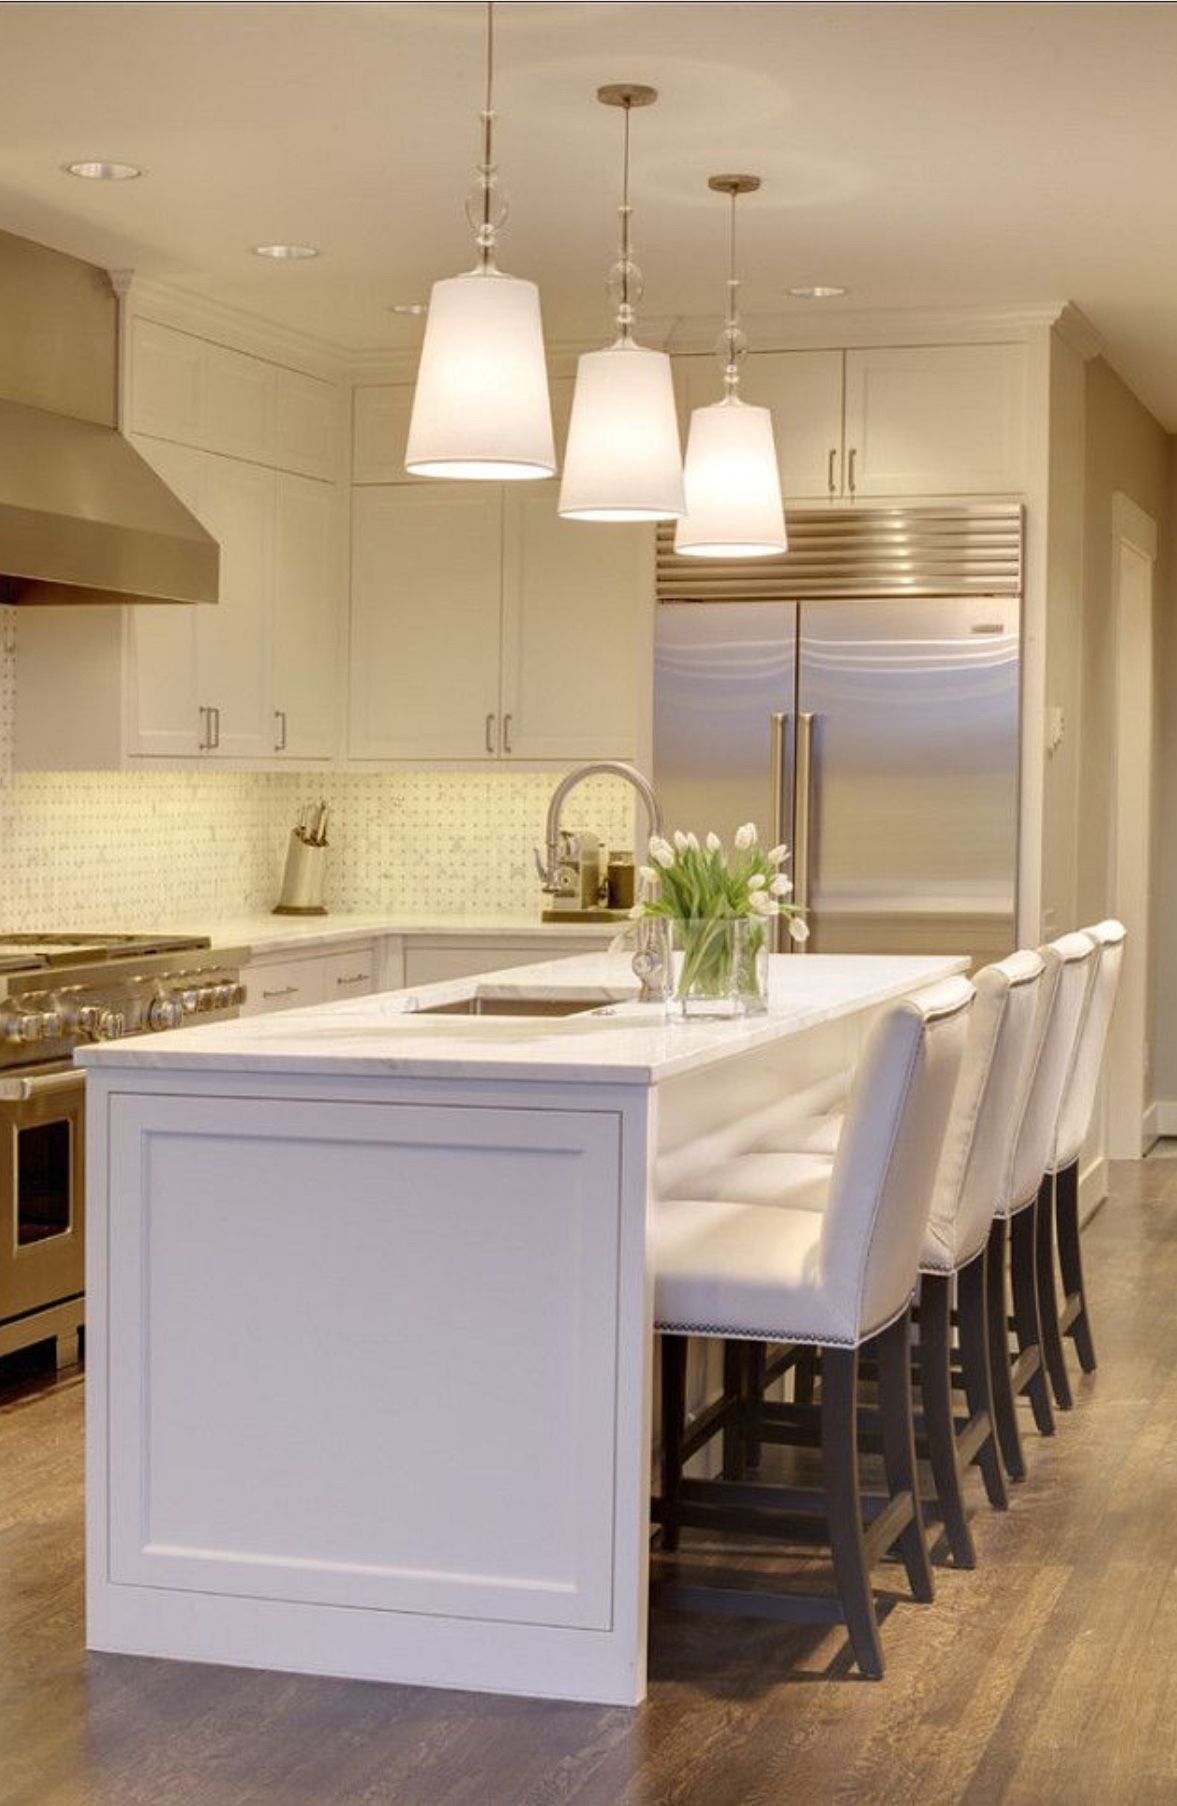 Amerikanische Küche Wohnung Beautiful Kitchen Tiled Splash Back And Awesome White